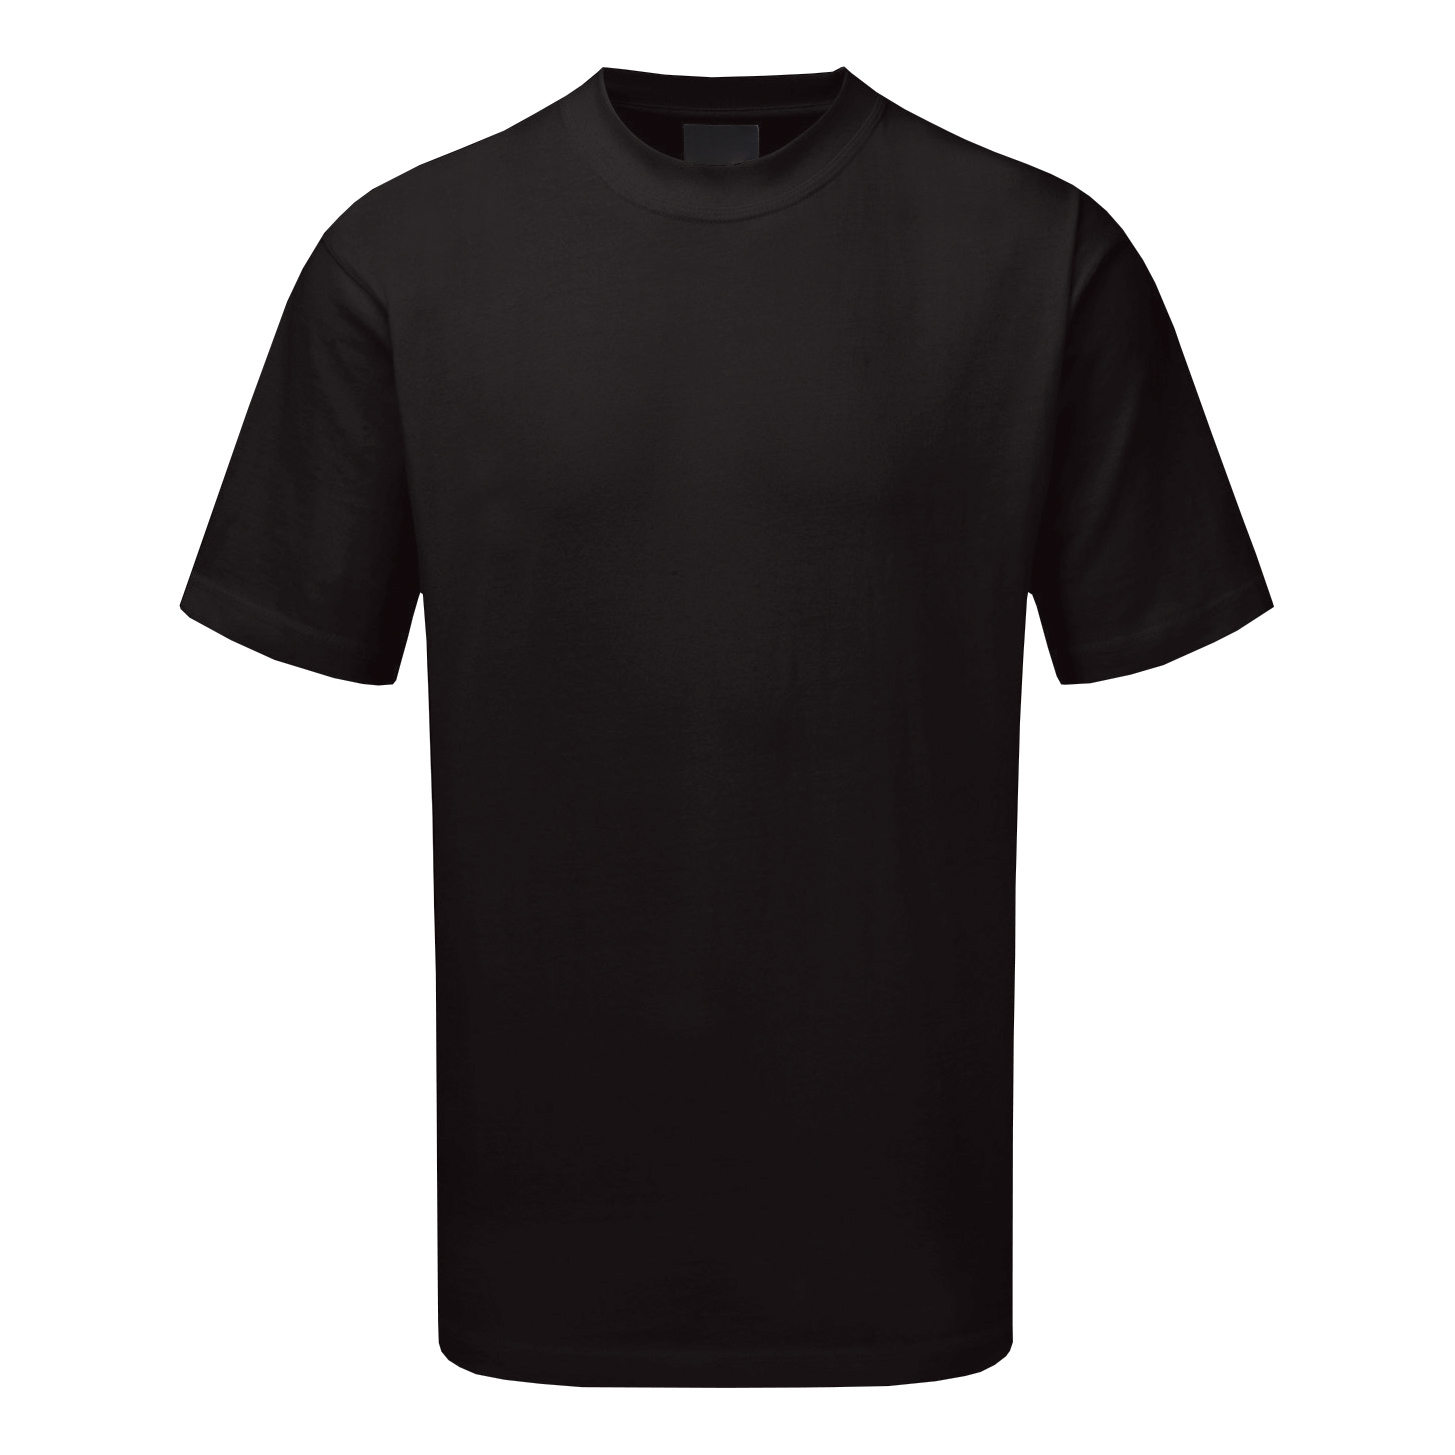 Premium T-Shirt Polycotton Triple Stitched Large Black Ref CLCTSHWBLL *Up to 3 Day Leadtime*